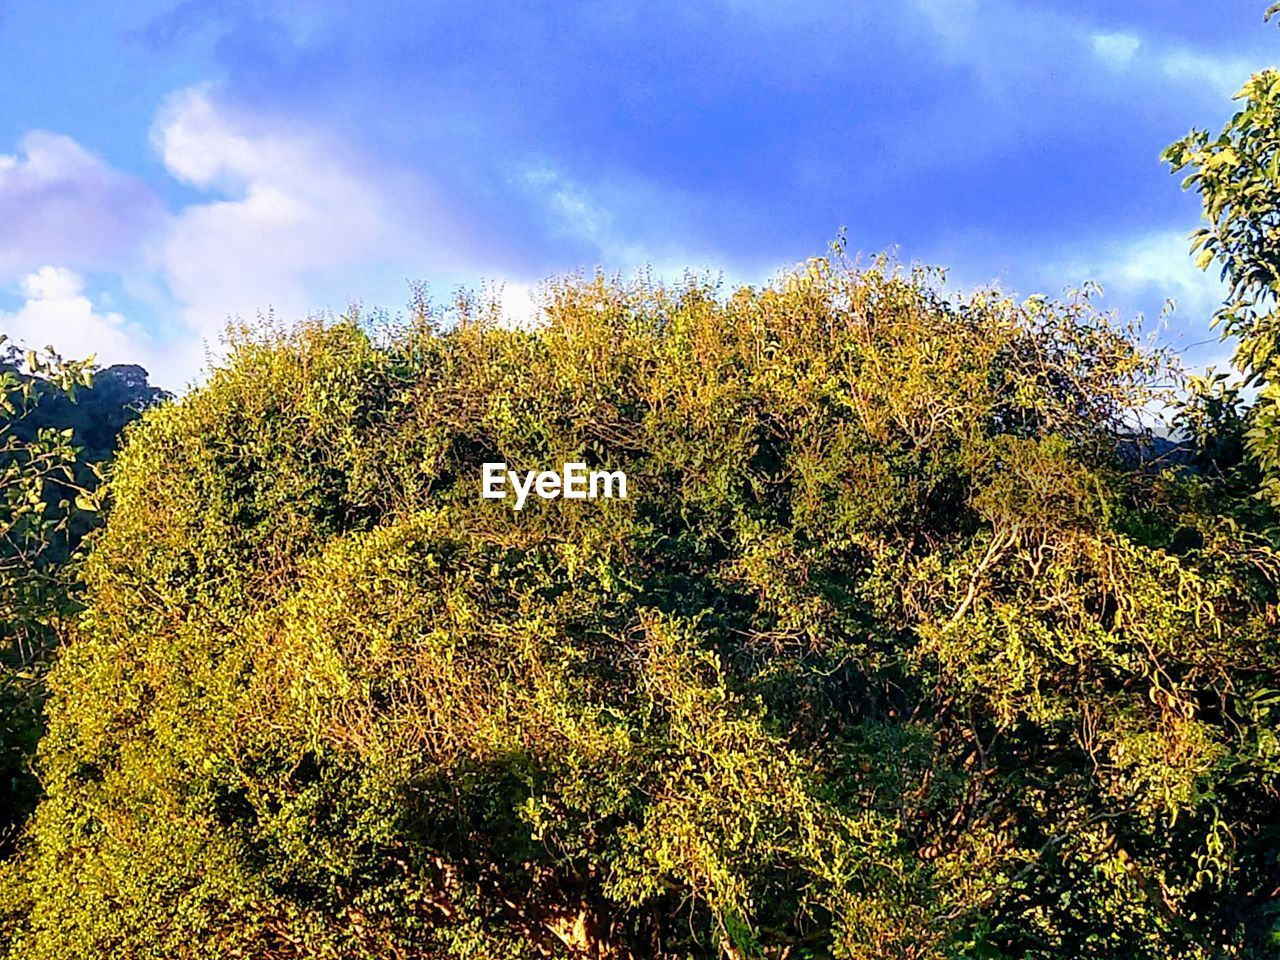 tree, plant, sky, cloud - sky, beauty in nature, growth, tranquility, no people, nature, day, low angle view, outdoors, tranquil scene, forest, green color, sunlight, non-urban scene, land, scenics - nature, yellow